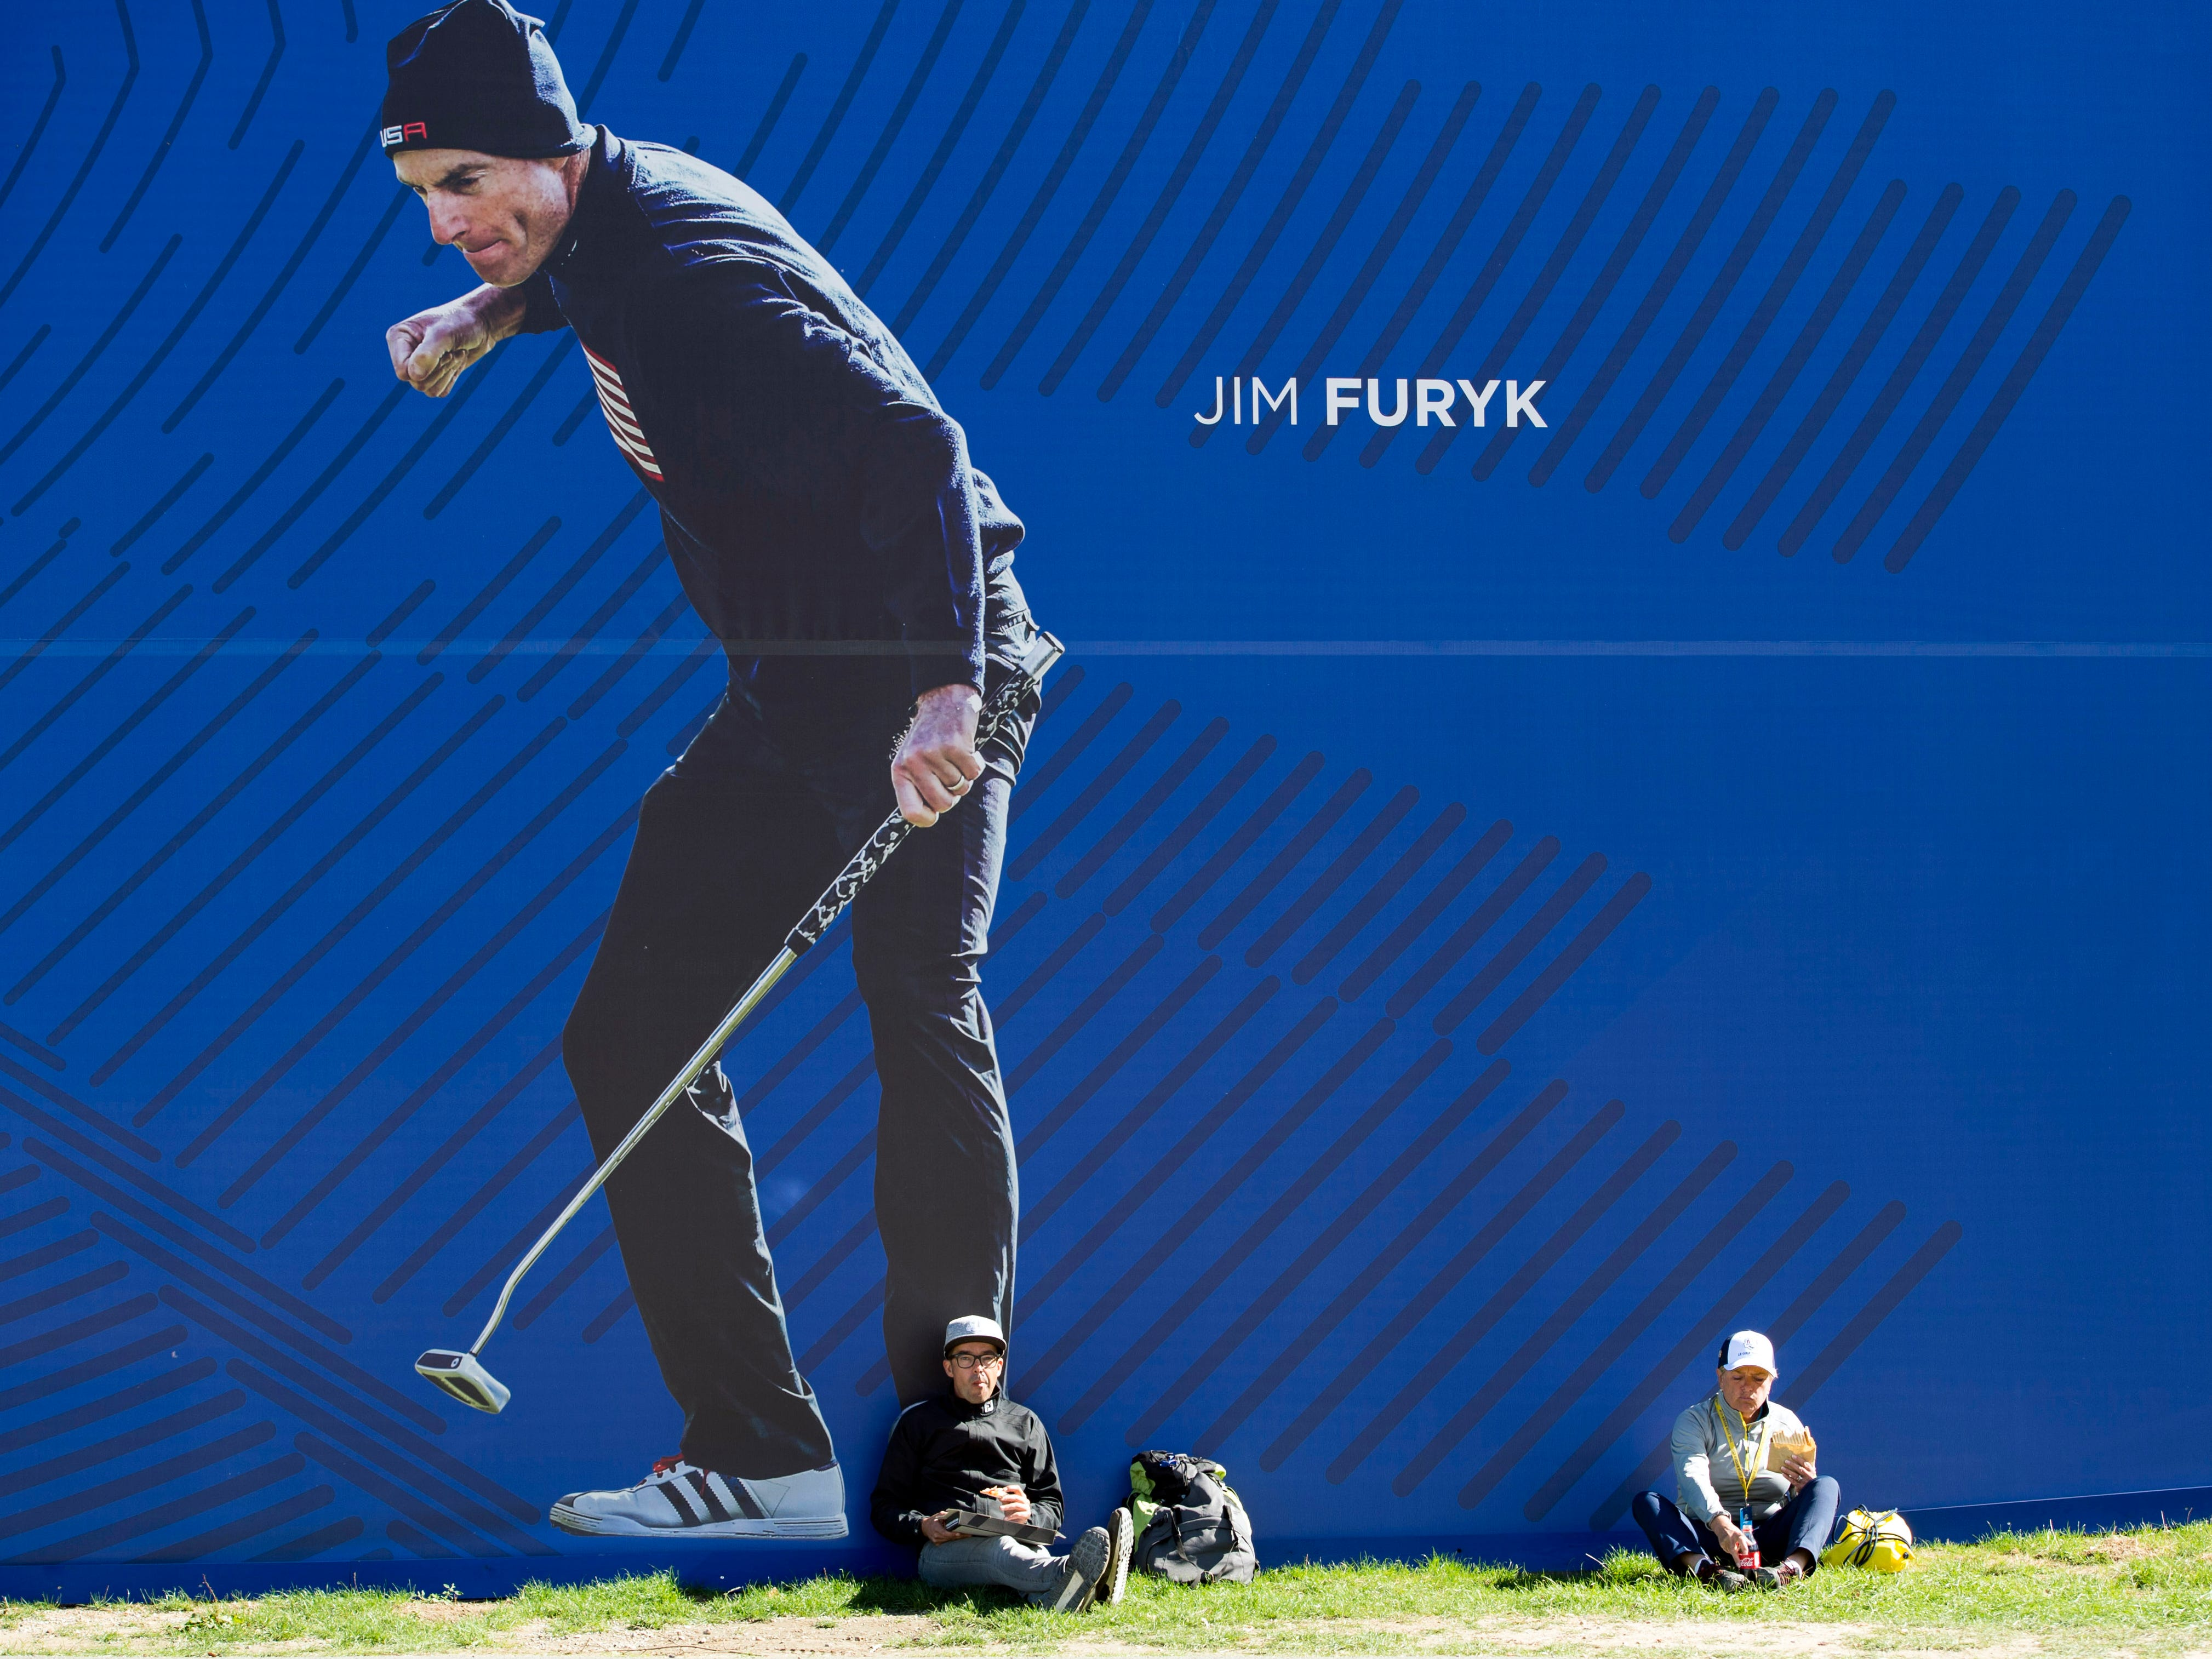 Spectators enjoy a snack under a giant poster of USA Ryder Cup captain Jim Furyk during a Ryder Cup practice round.